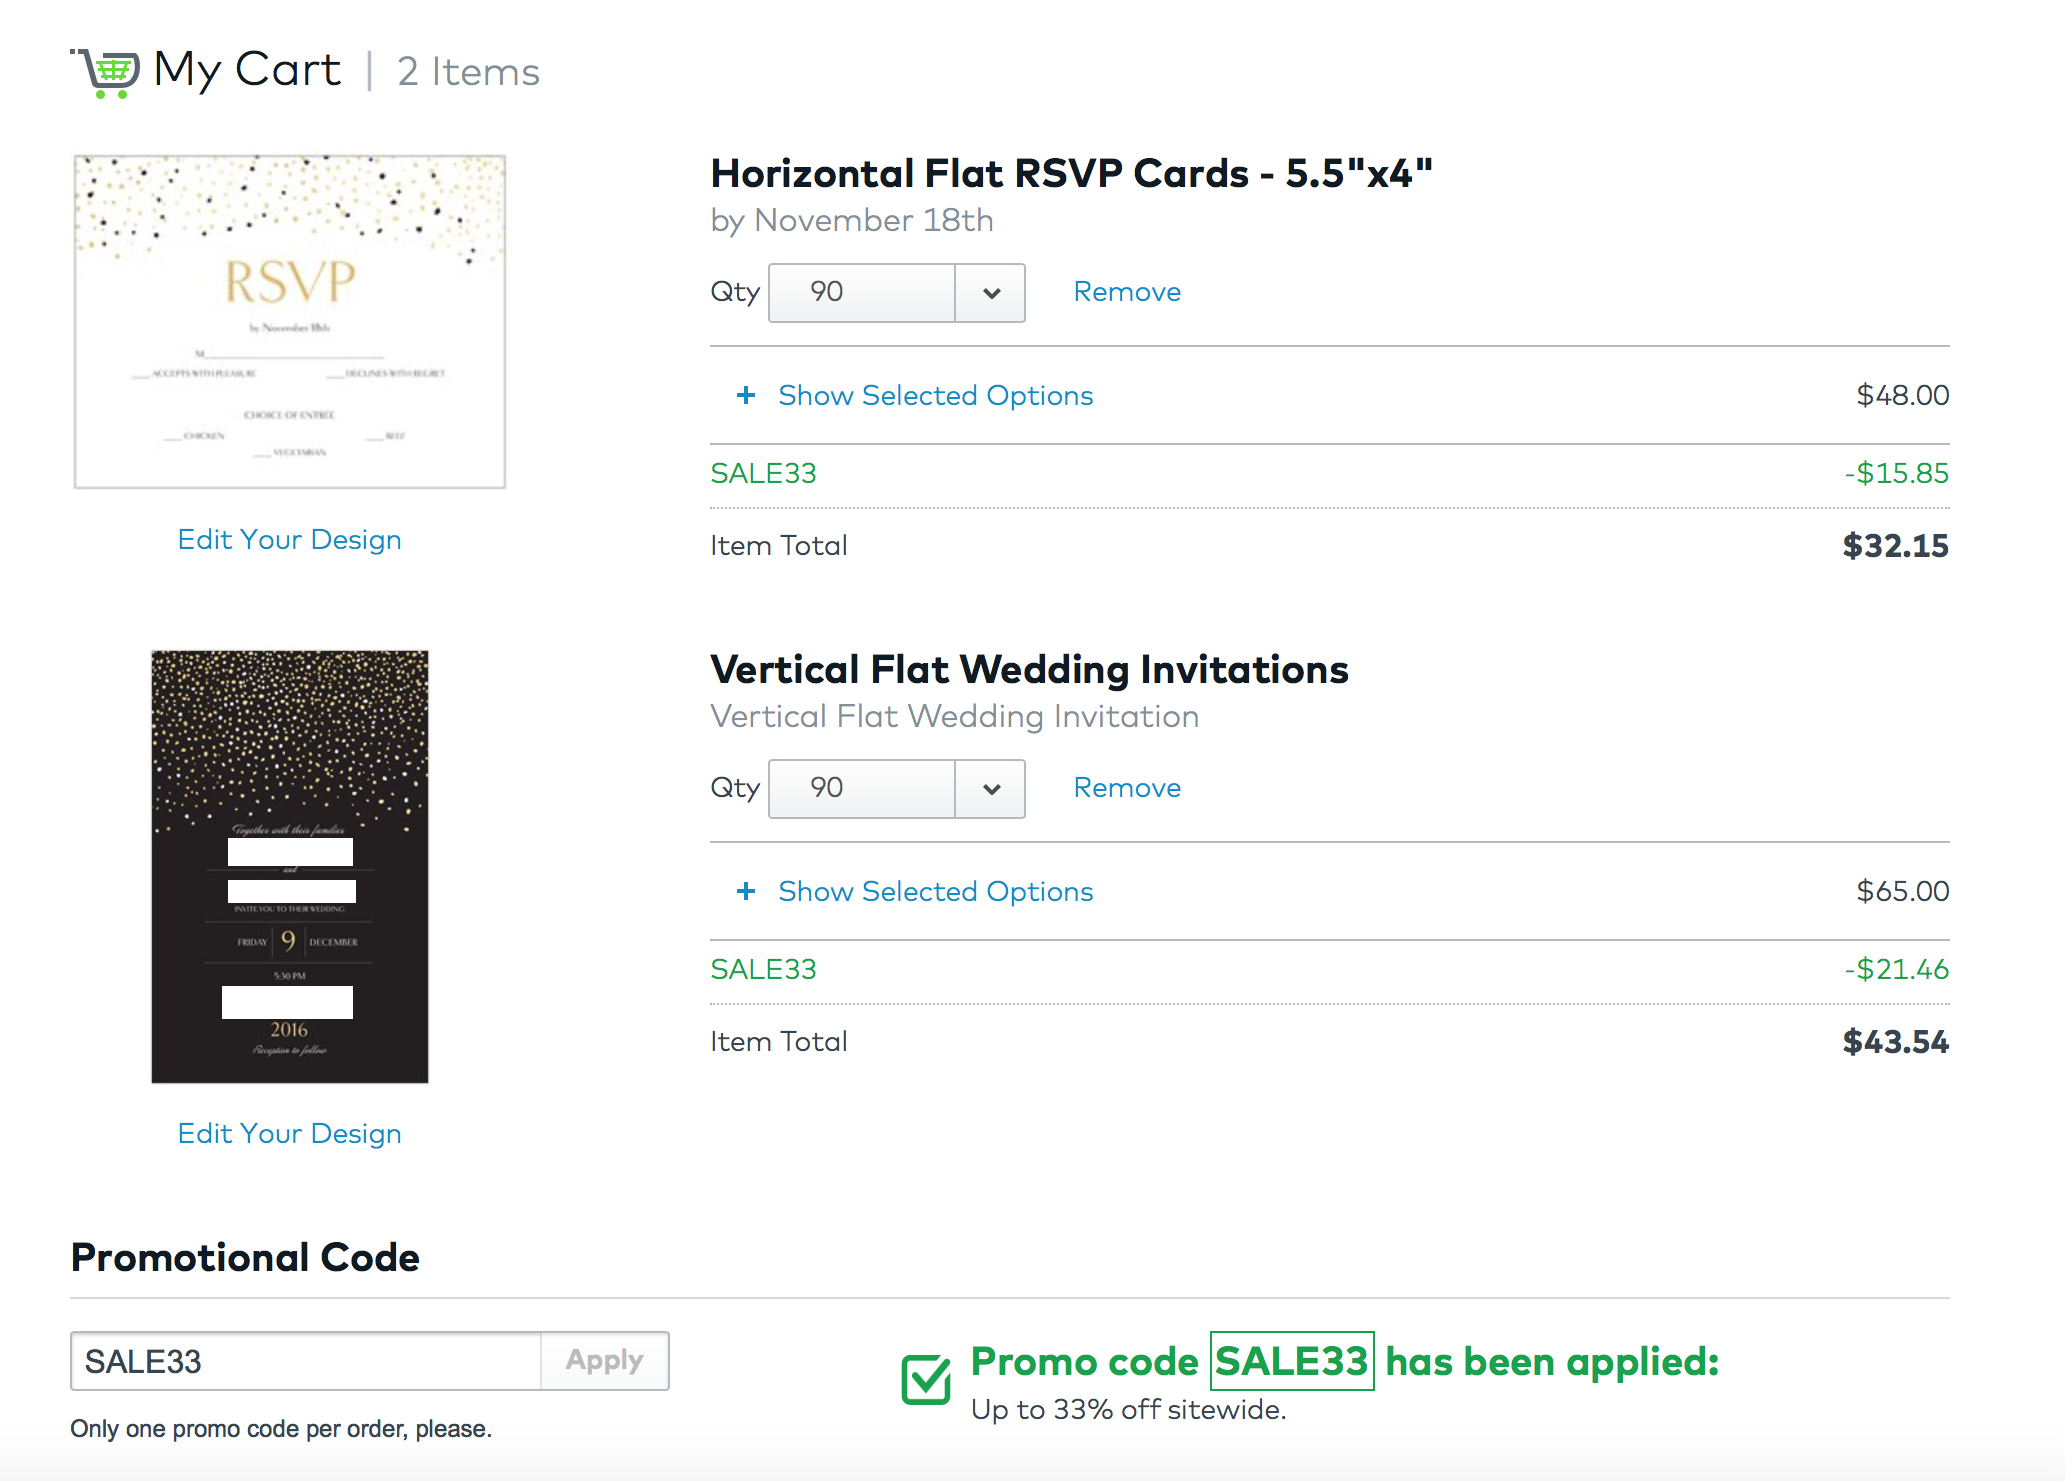 a very frugal wedding saving on printing and paper